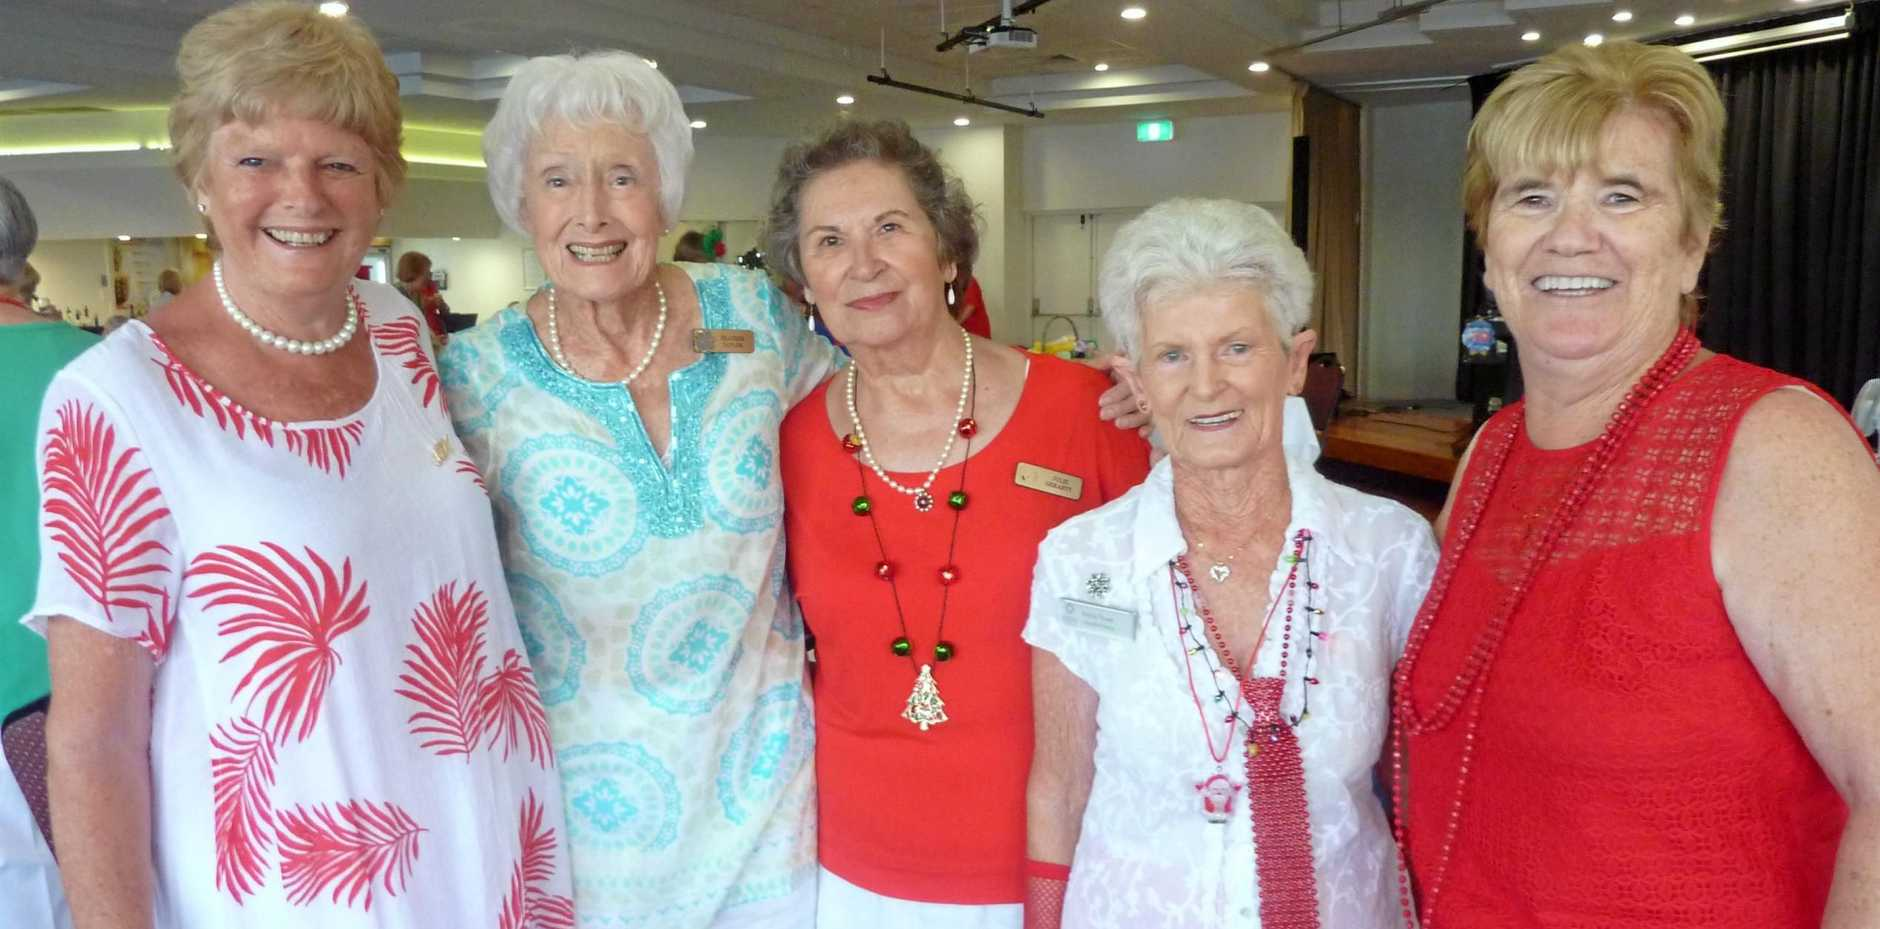 LOOKING FESTIVE: Laura Hall, Heather Taylor, Julie Geraghty, Nancy Stewart and Merle Rowe mix and mingle at the Caloundra Evening VIEW Dinner.